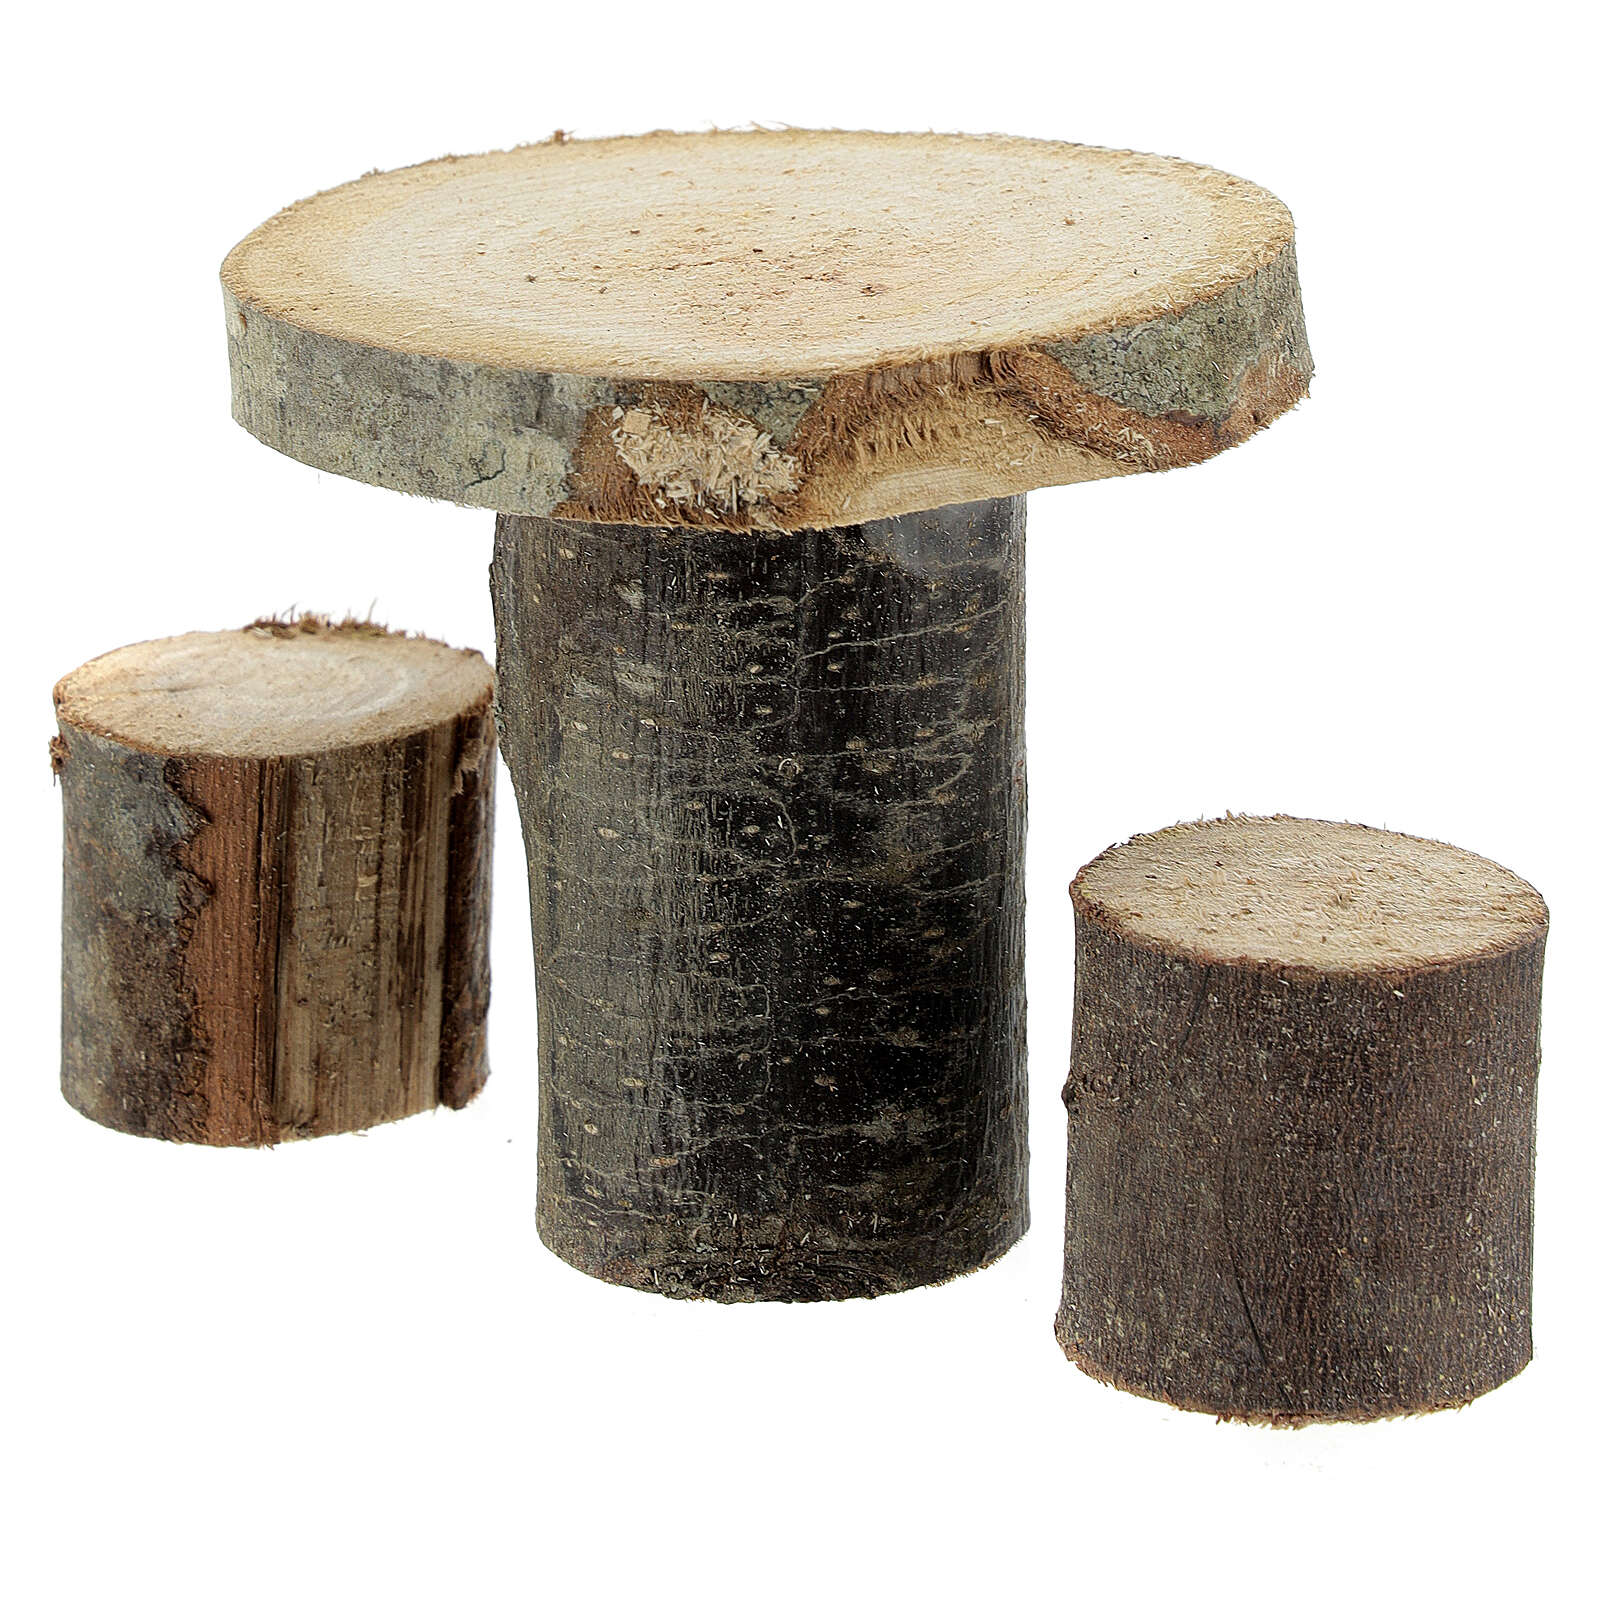 Wood round table 8x8x8 cm with stools for Nativity Scene with 14-16 cm figurines 4